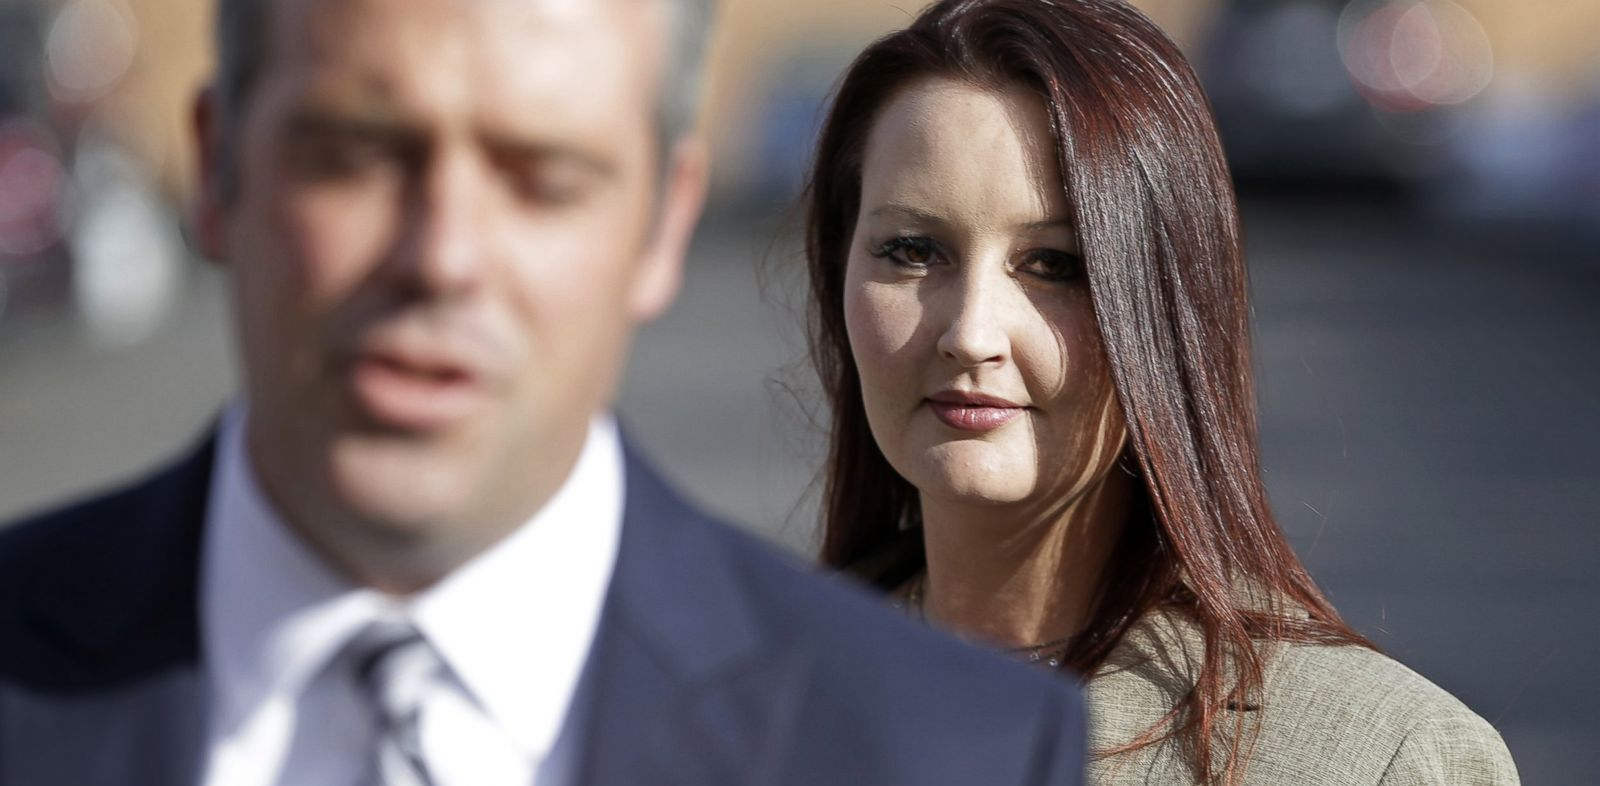 PHOTO: Gypsy Willis, the 37-year-old mistress of Martin MacNeill, arrives at court, Oct. 25, 2013, in Provo, Utah, to take a much-anticipated turn on the witness stand.